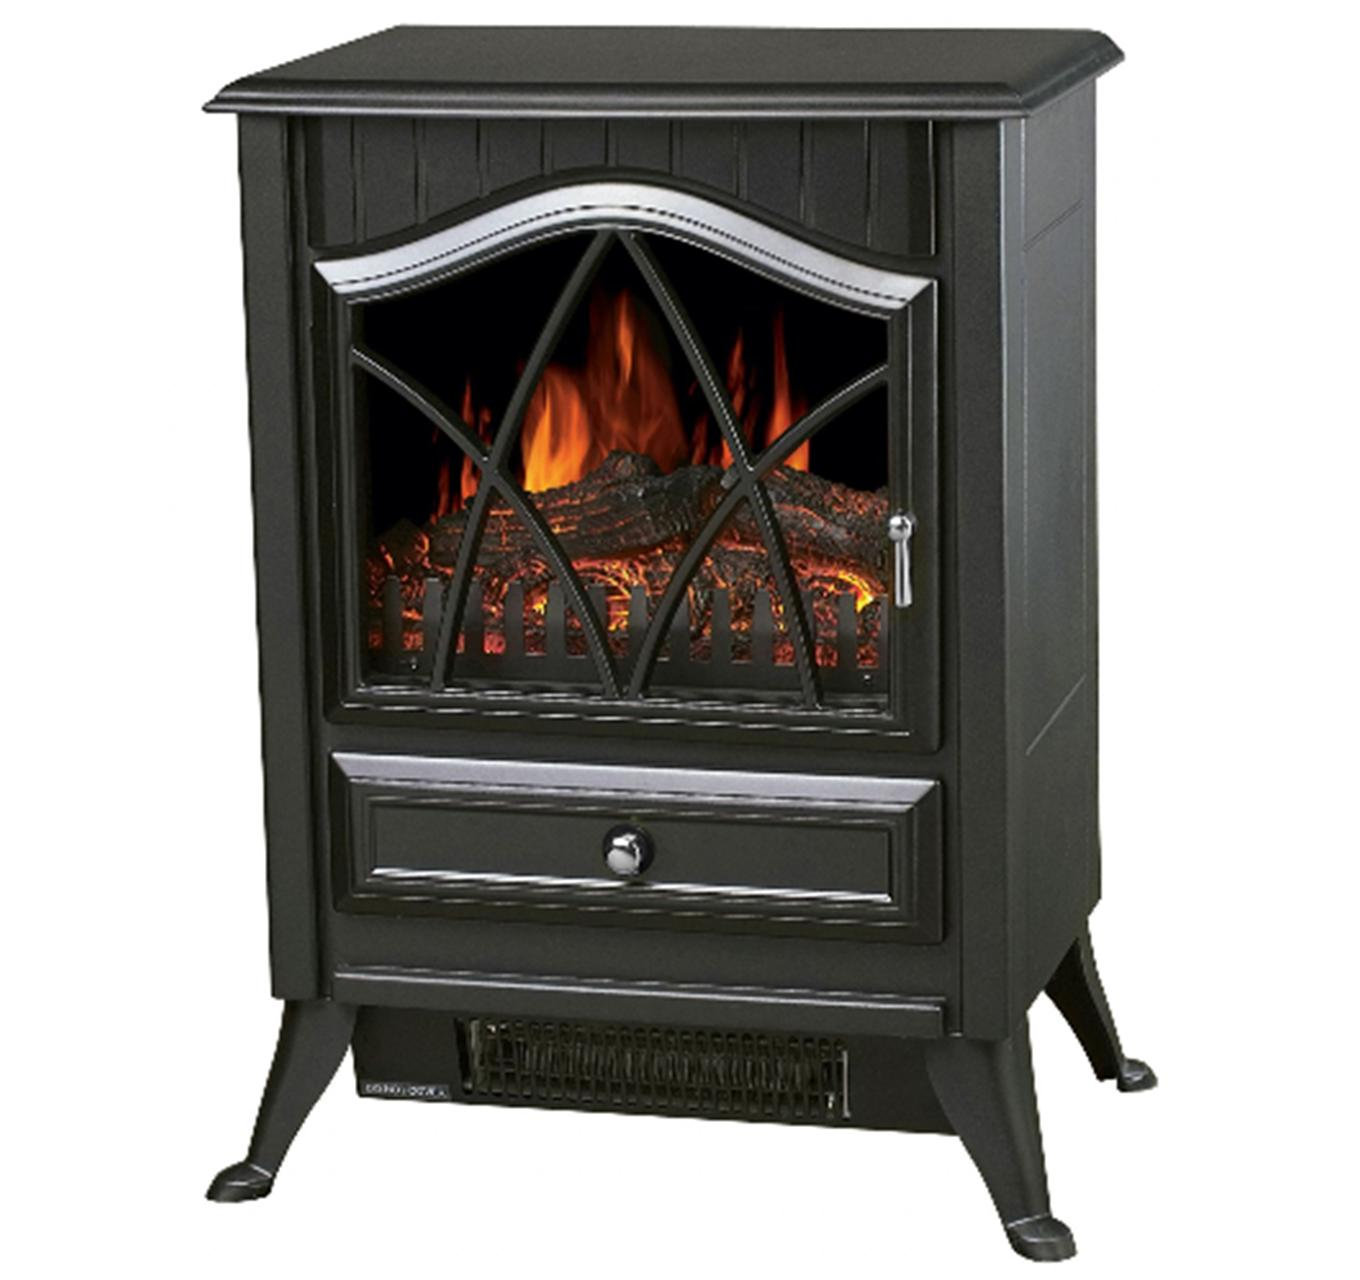 Orbit Electric Stove - Black